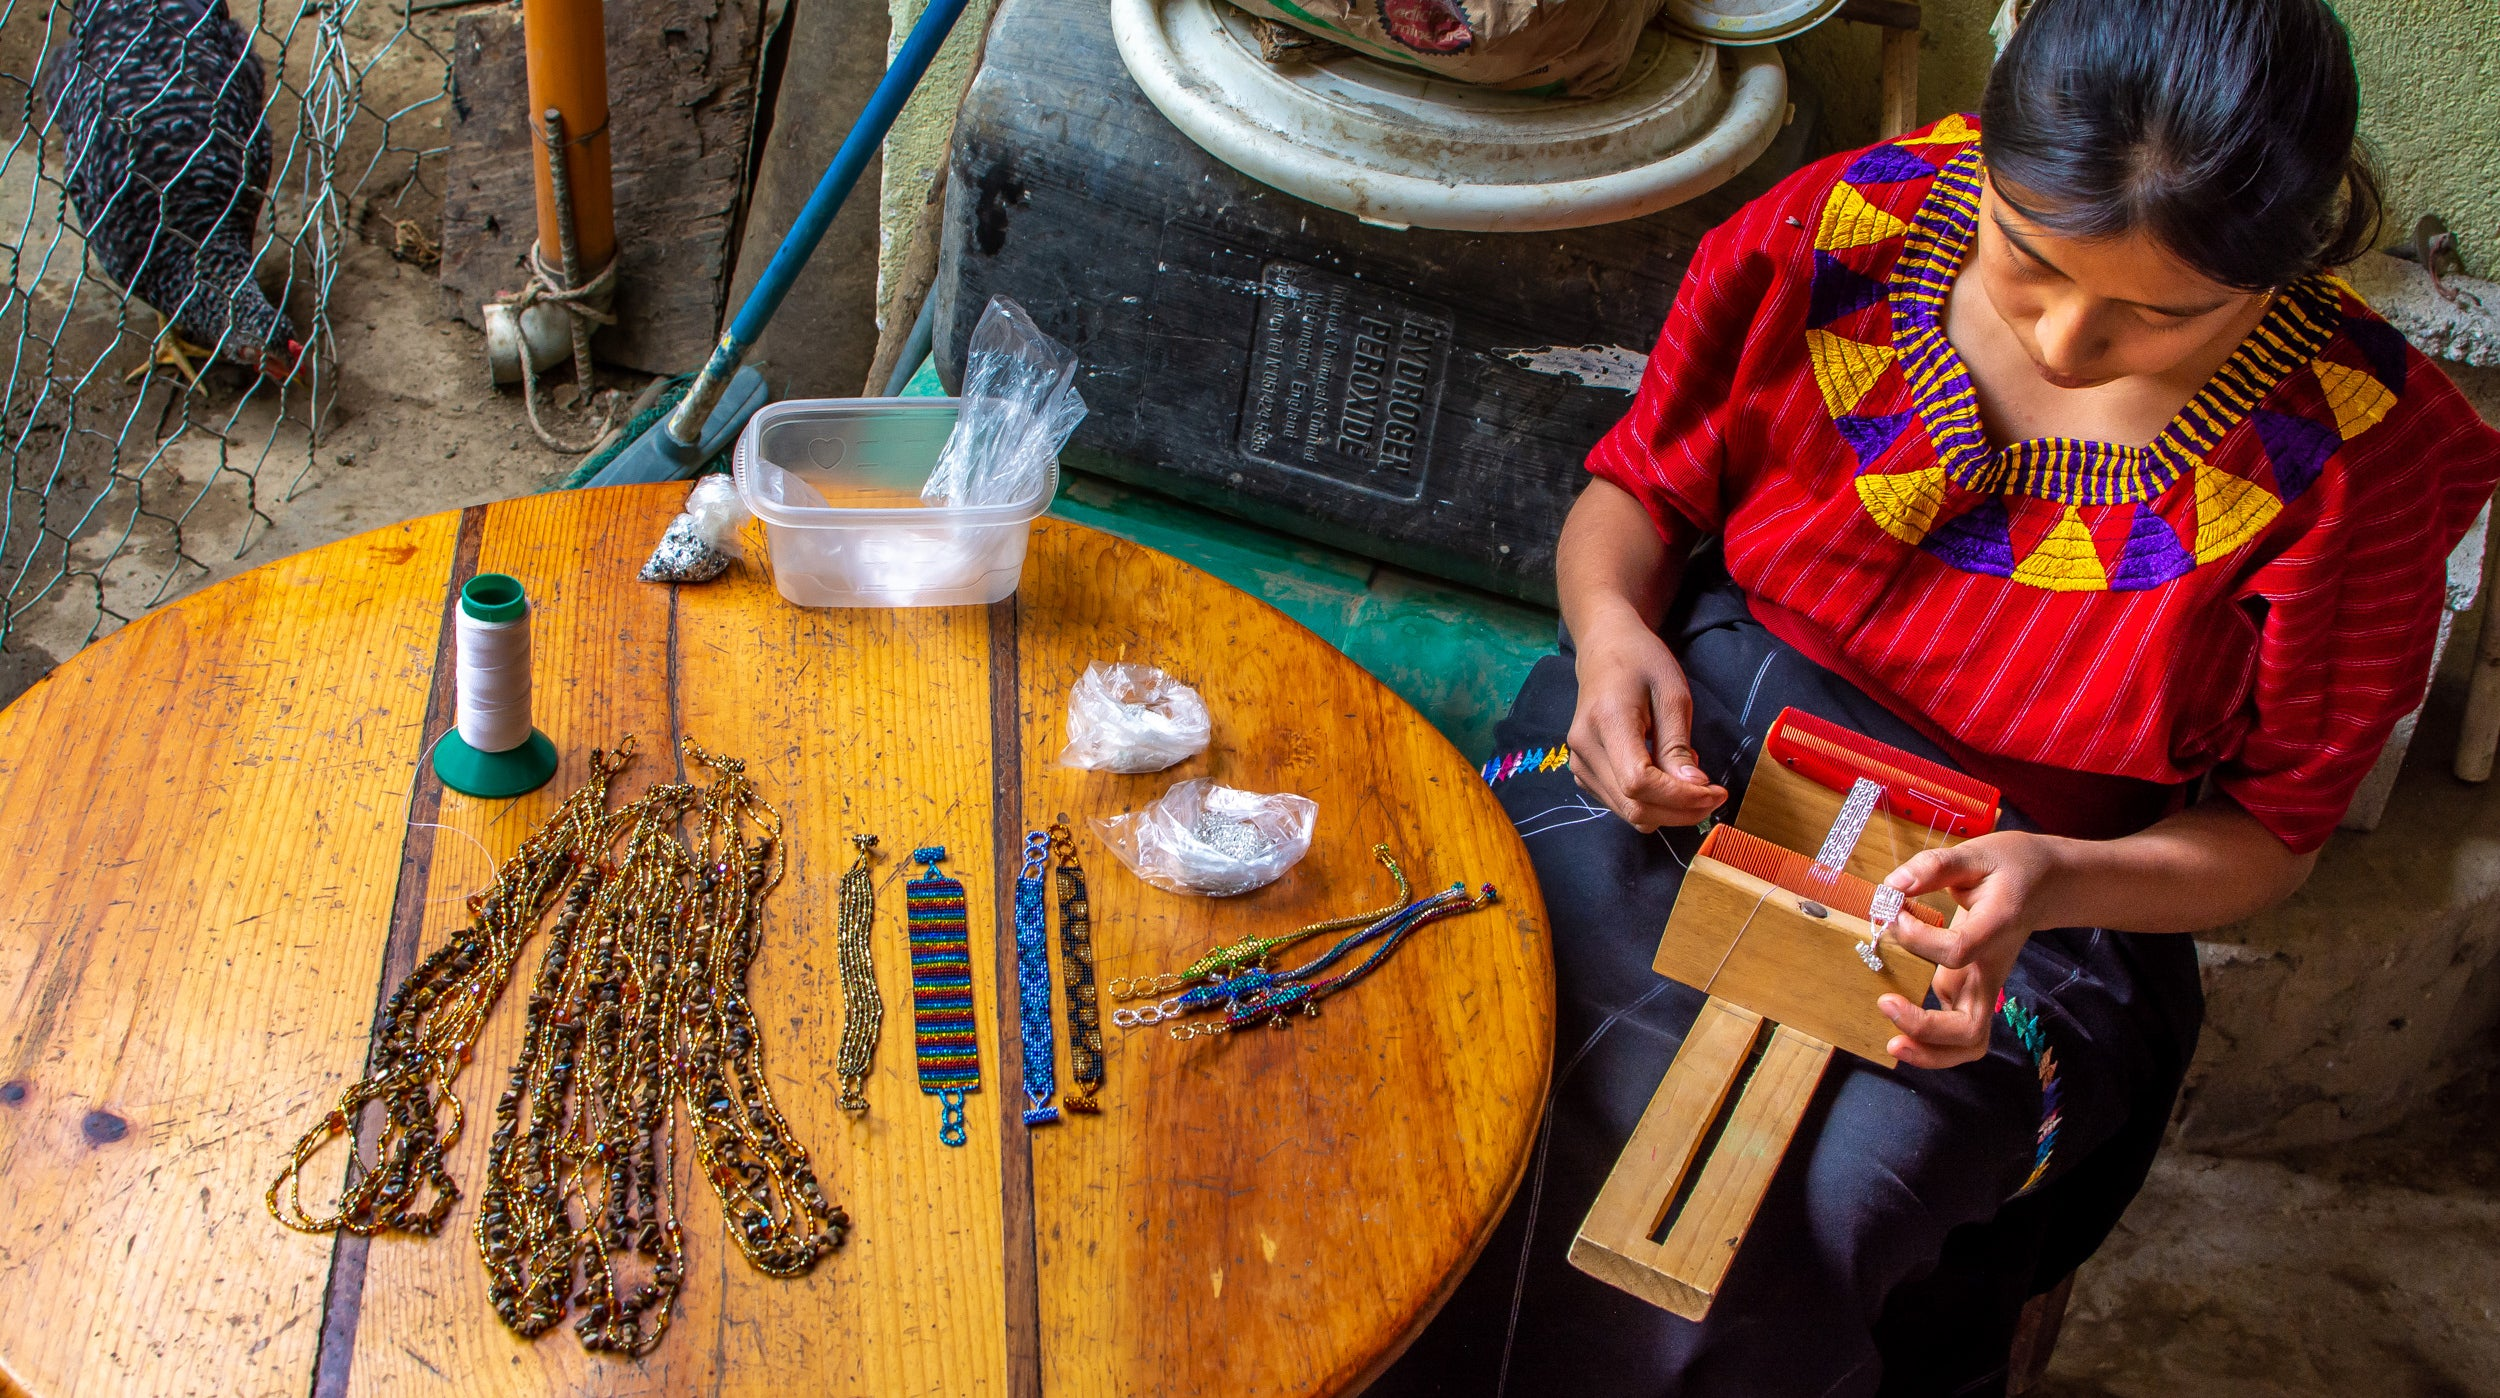 Beyond Beads goes beyond fair trade - offering women in Guatamala fair wages for the craftsmenship